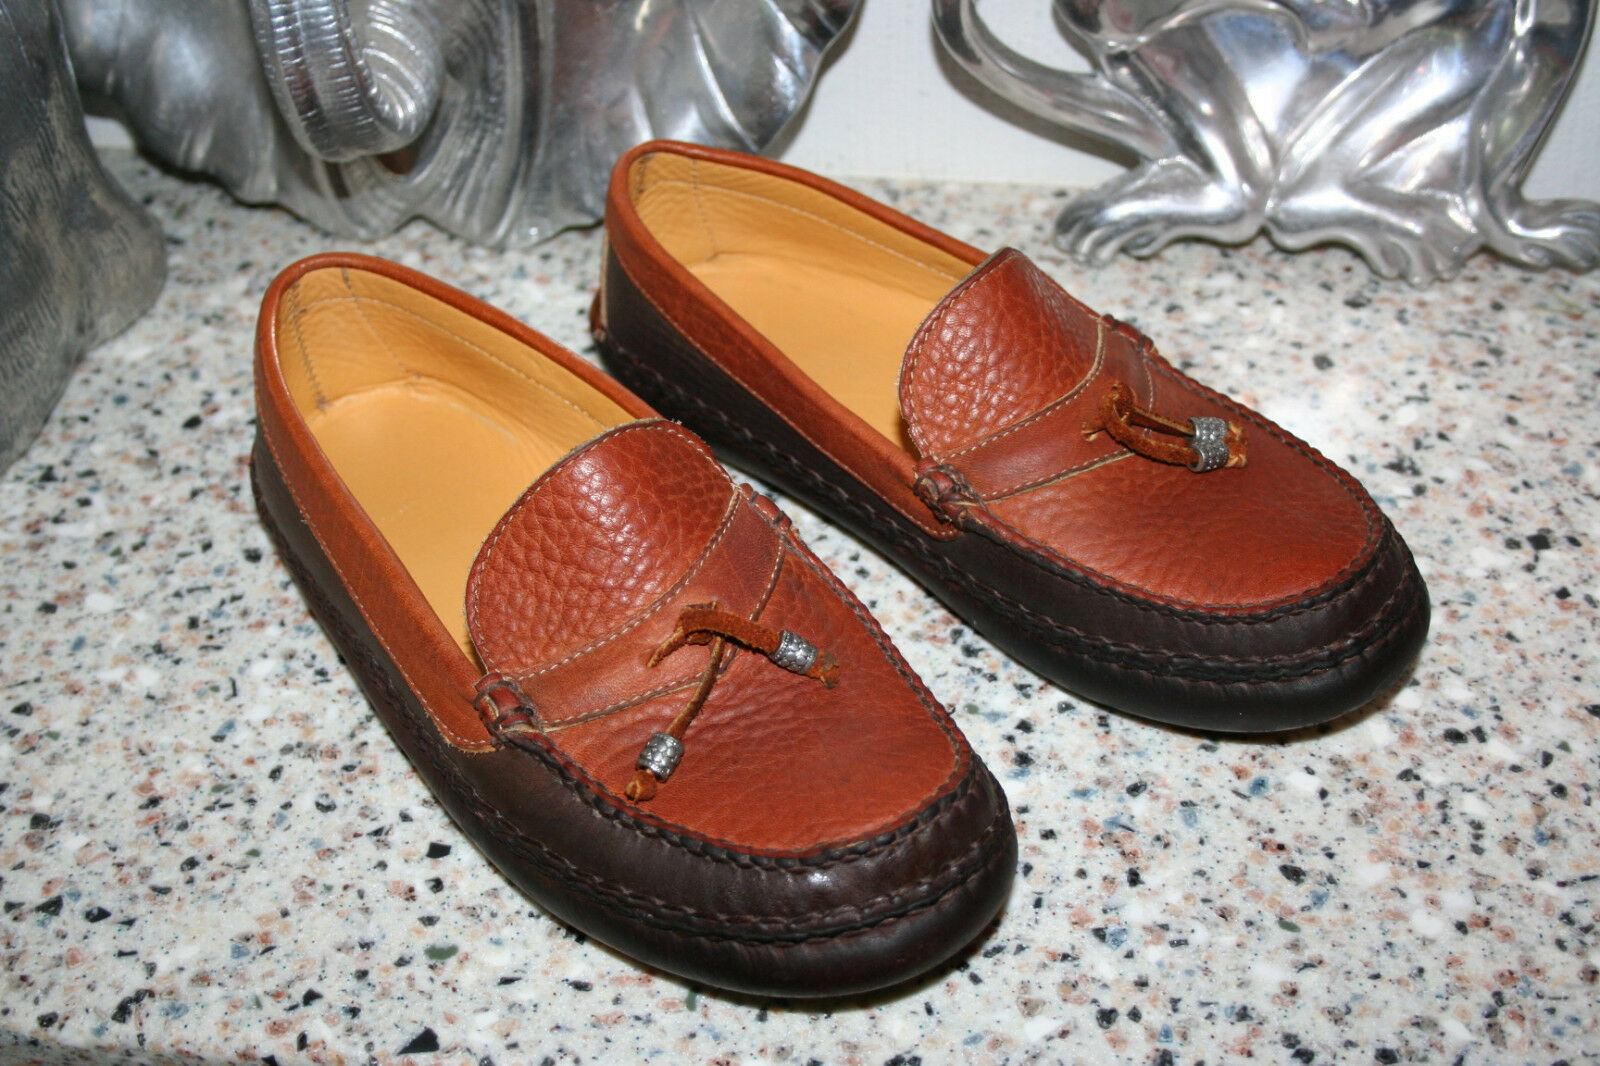 Willy Moccasin Slip On Tobacco scarpe Chocolate Trim Tassels Handsewn Dimensione 8  425